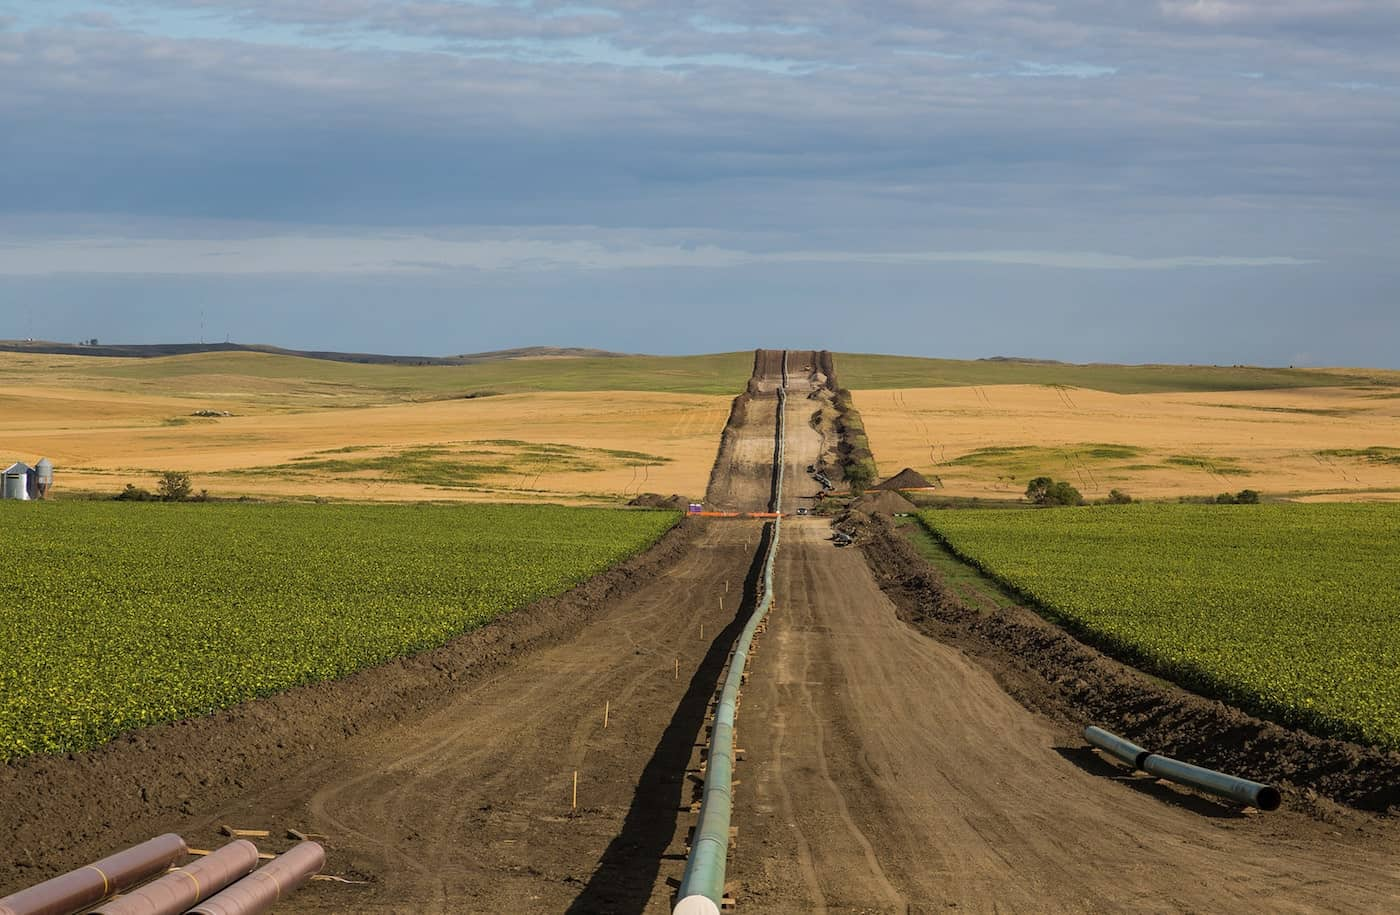 The Dakota Access Pipeline under construction in August, as seen near New Salem, North Dakota. Photo by Tony Webster/Flickr